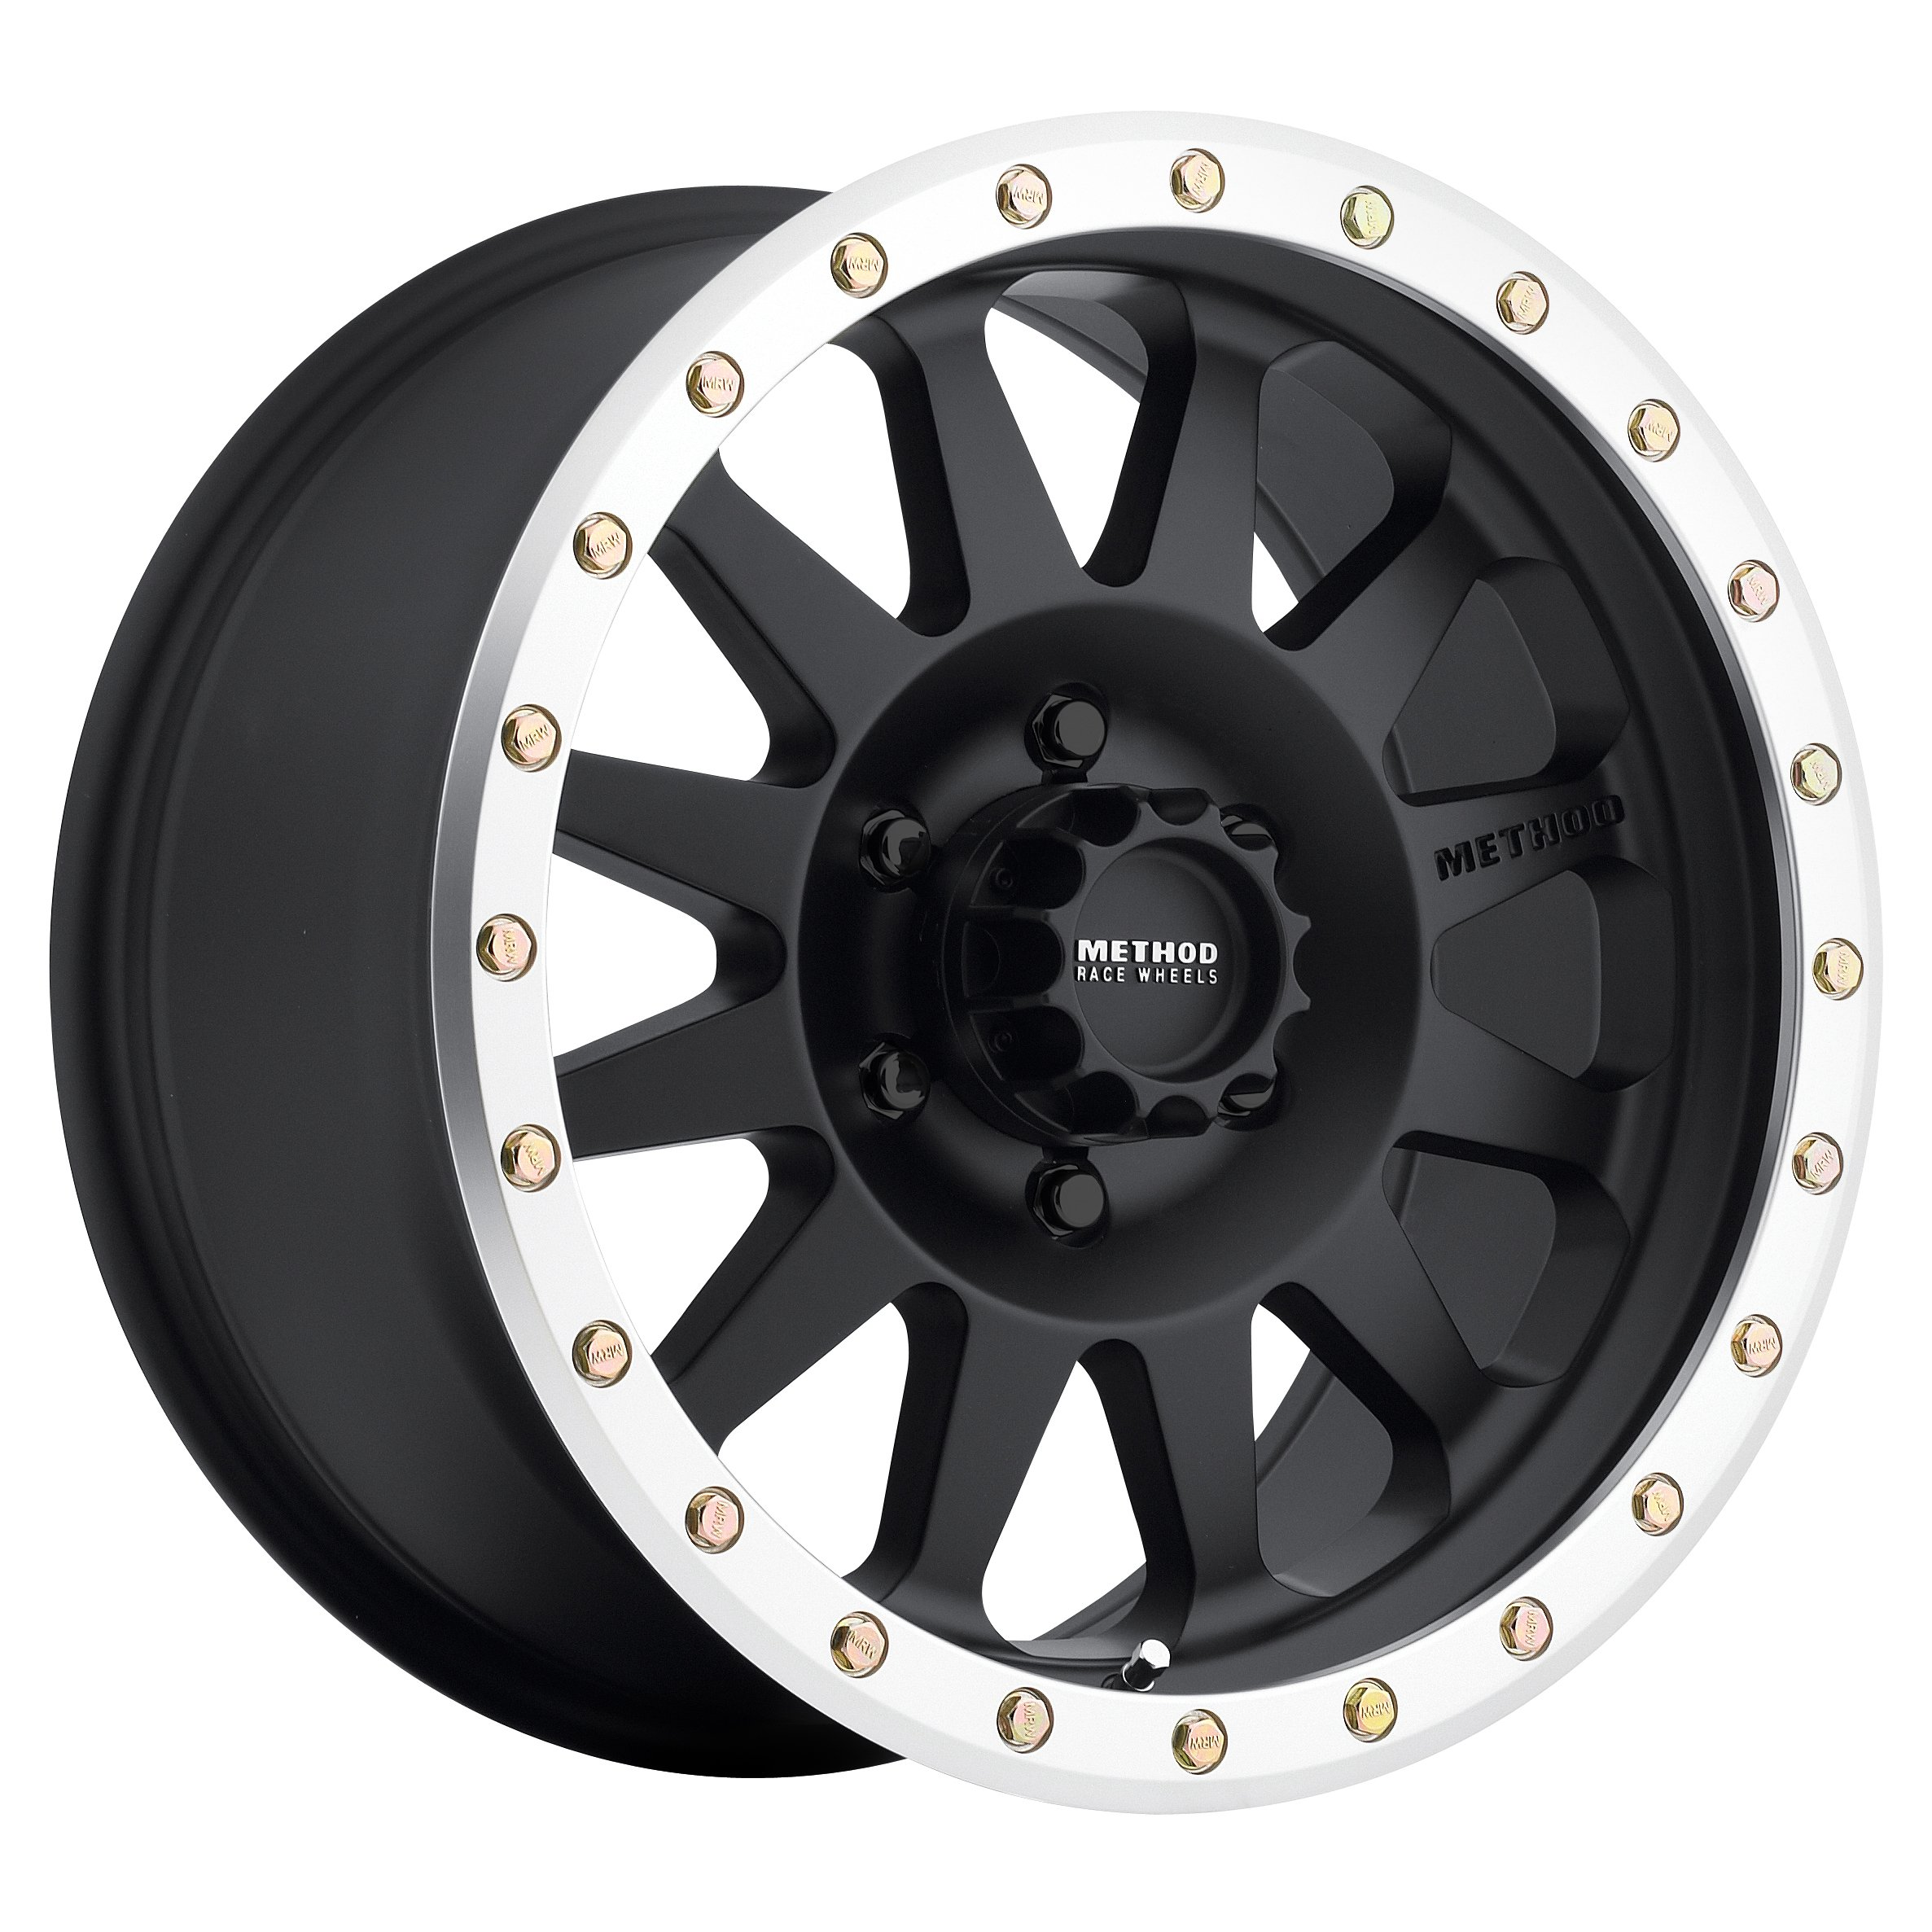 Method Race Wheels Double Standard Matte Black Wheel with Machined Lip (16x8''/5x5'') 0 mm offset